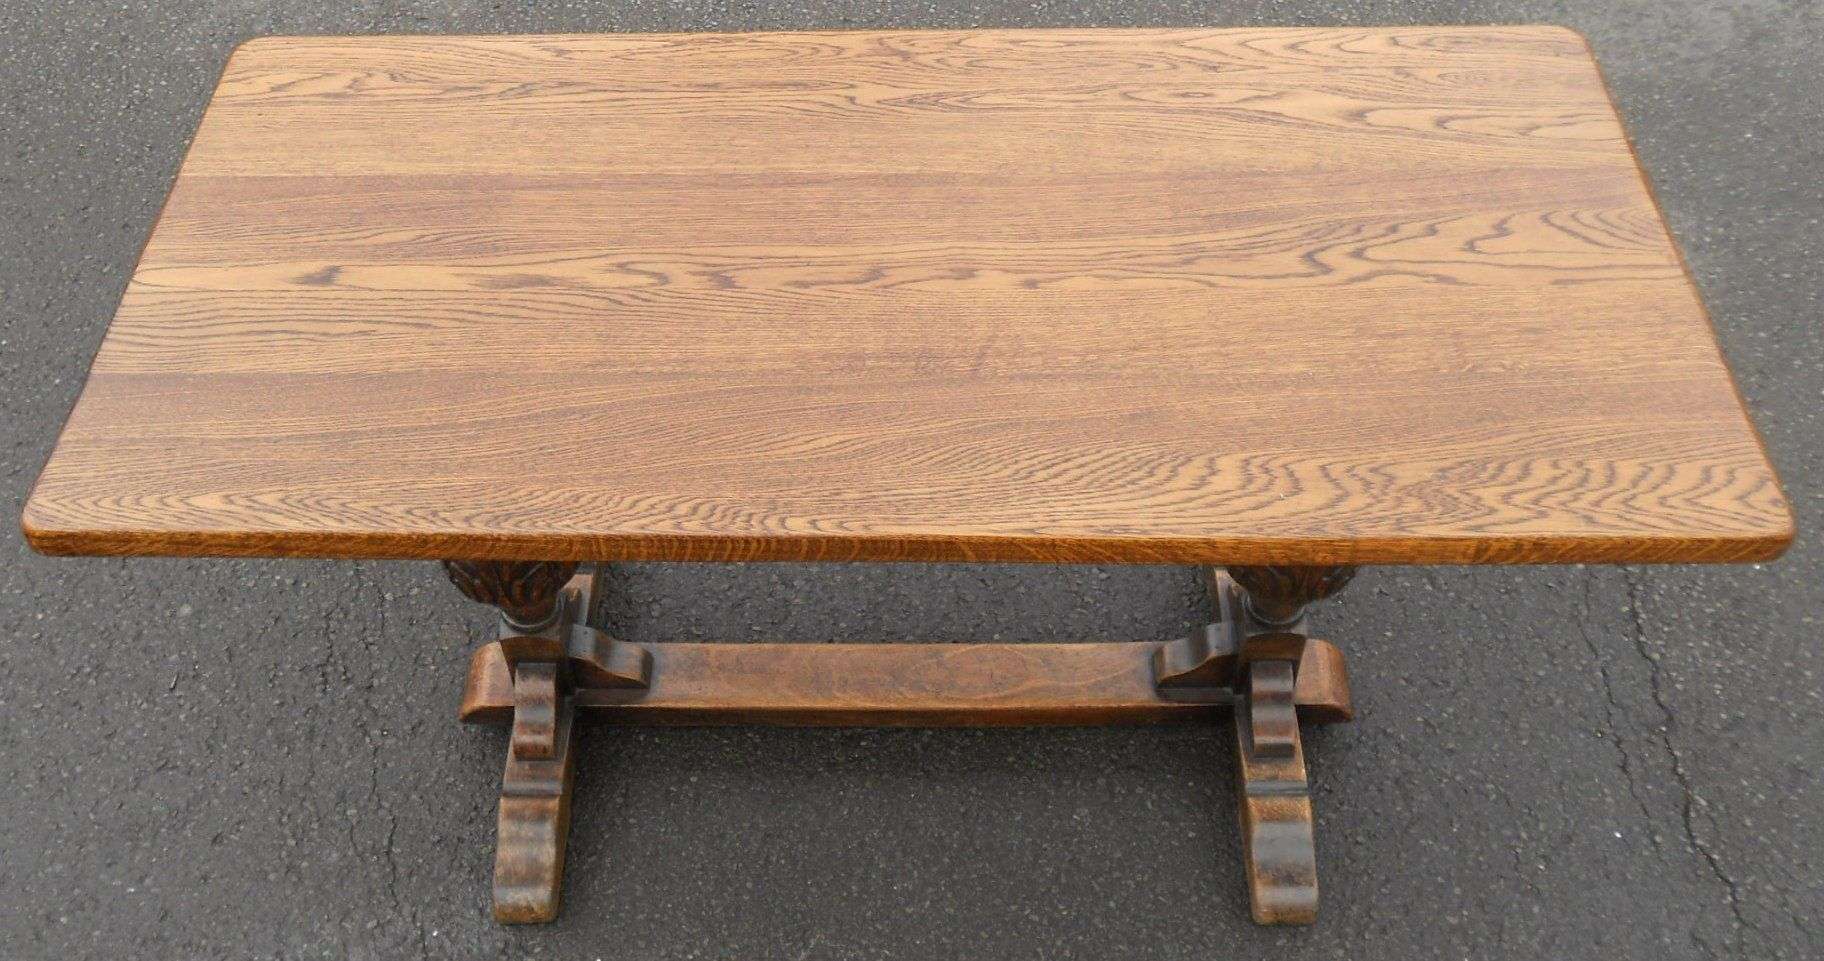 Quality Oak Refectory Dining Table : quality oak refectory dining table 4604 p from www.harrisonantiquefurniture.co.uk size 1824 x 961 jpeg 306kB